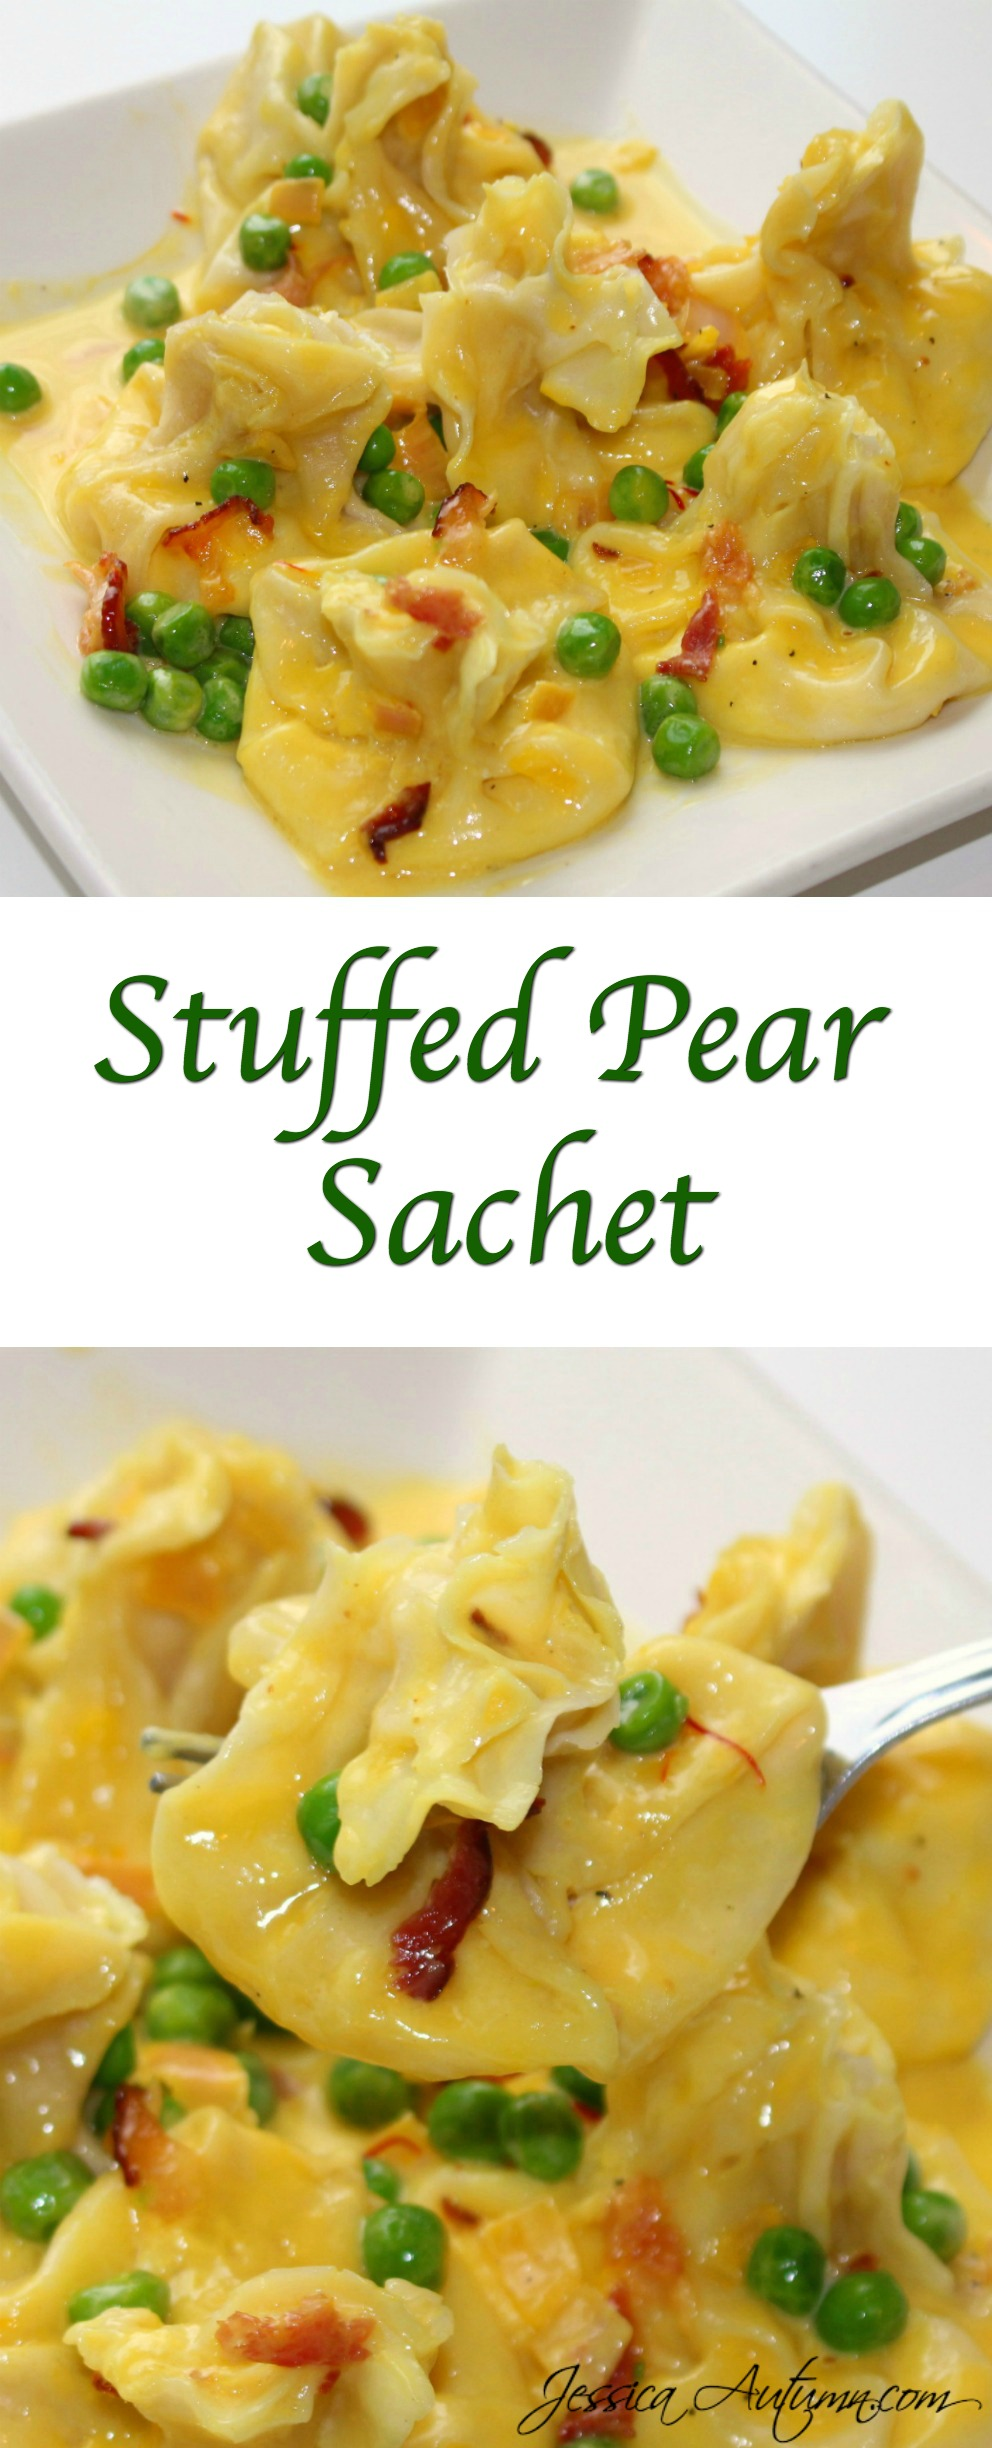 Stuffed Pear Sachet. I'm in love with this dish! Delicious pear and cheese filled pasta pouches with a creamy saffron sauce drizzled over the top. It's truly heavenly!